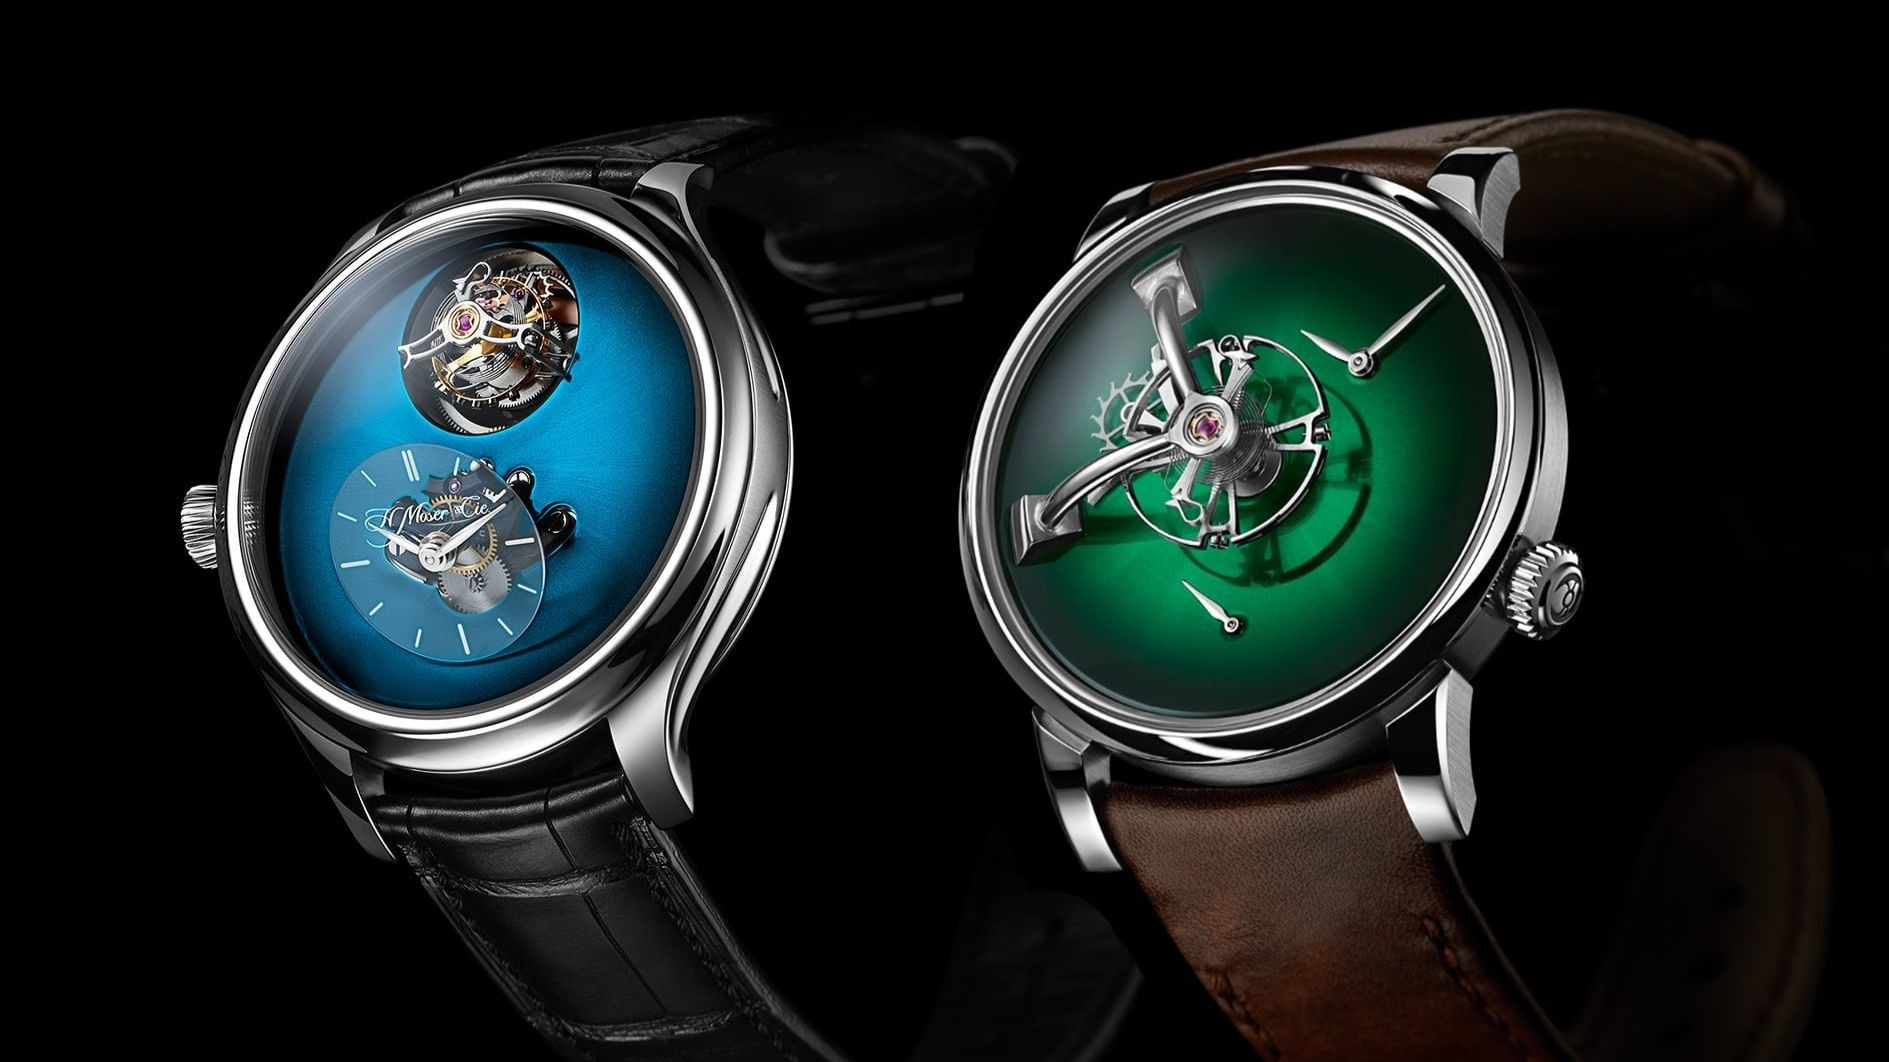 H. Moser & Cie. and MB&F join forces: New Endeavour Cylindrical Tourbillon and LM101 watches